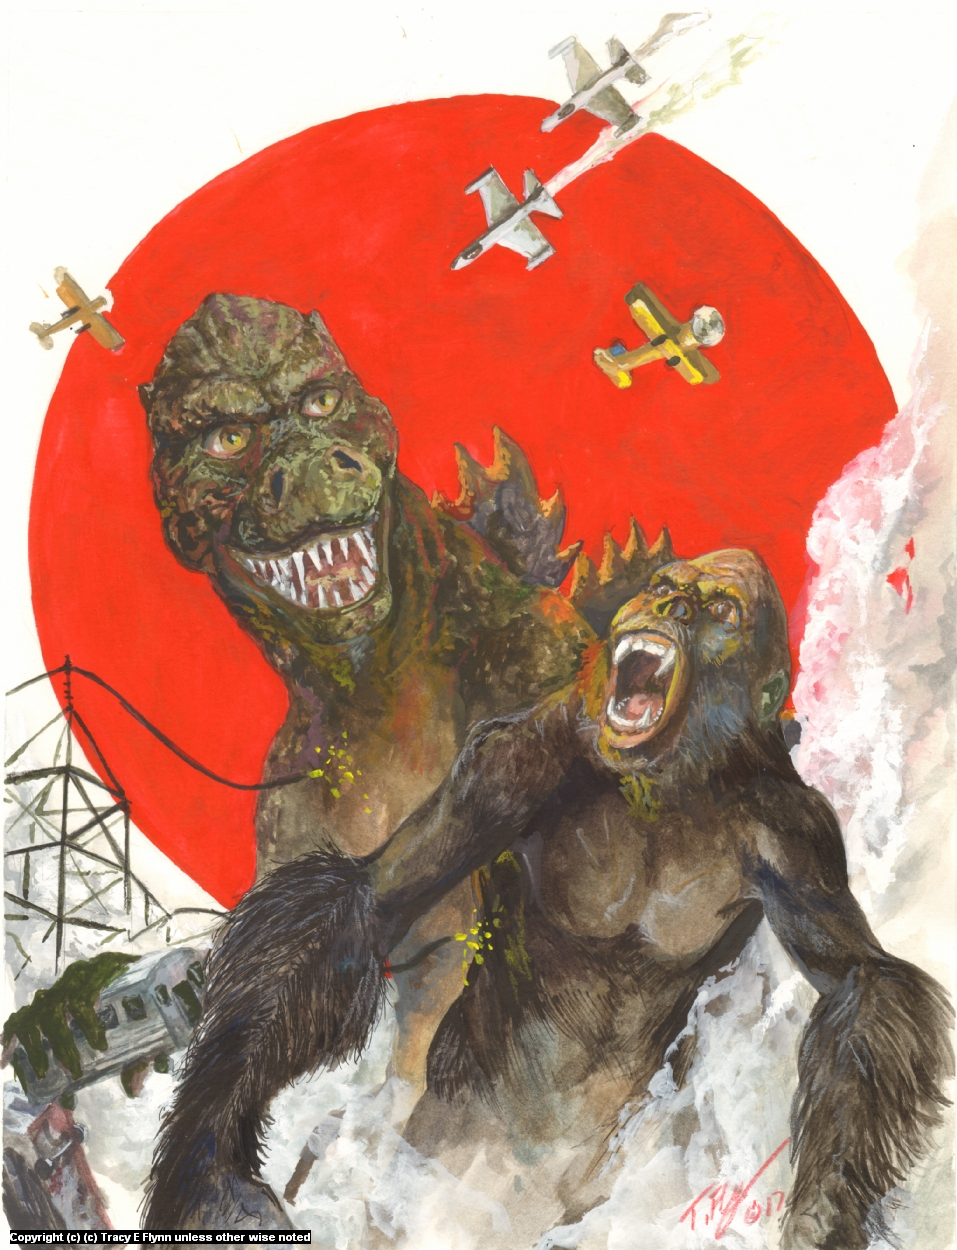 KONGZILLA Artwork by Tracy E Flynn